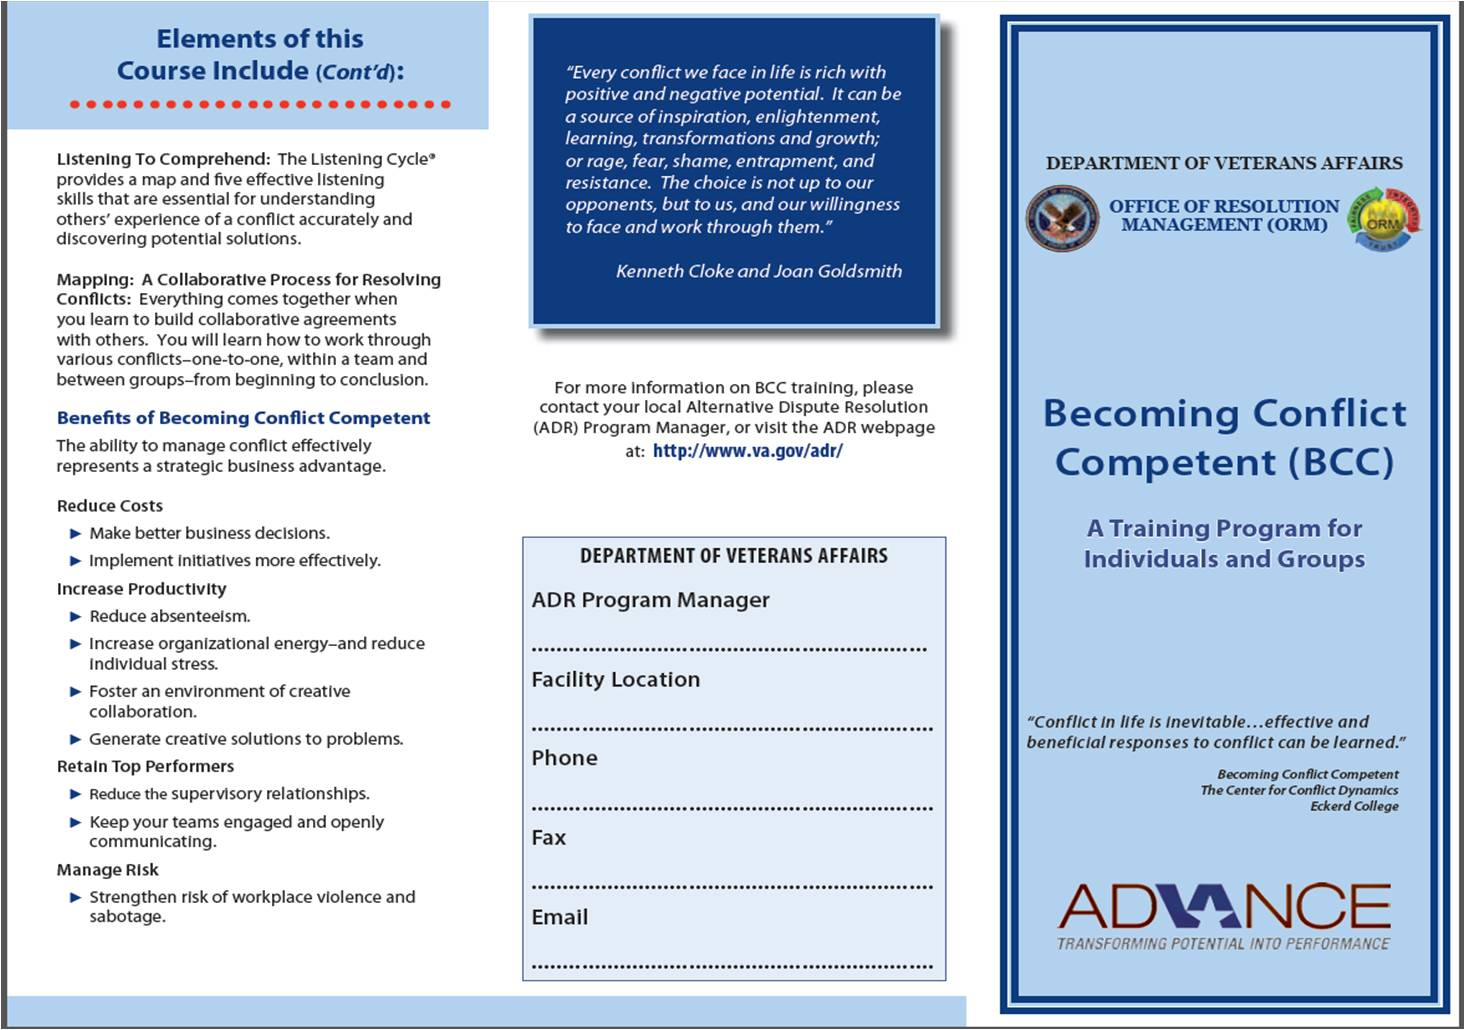 Becoming Conflict Competent Brochure